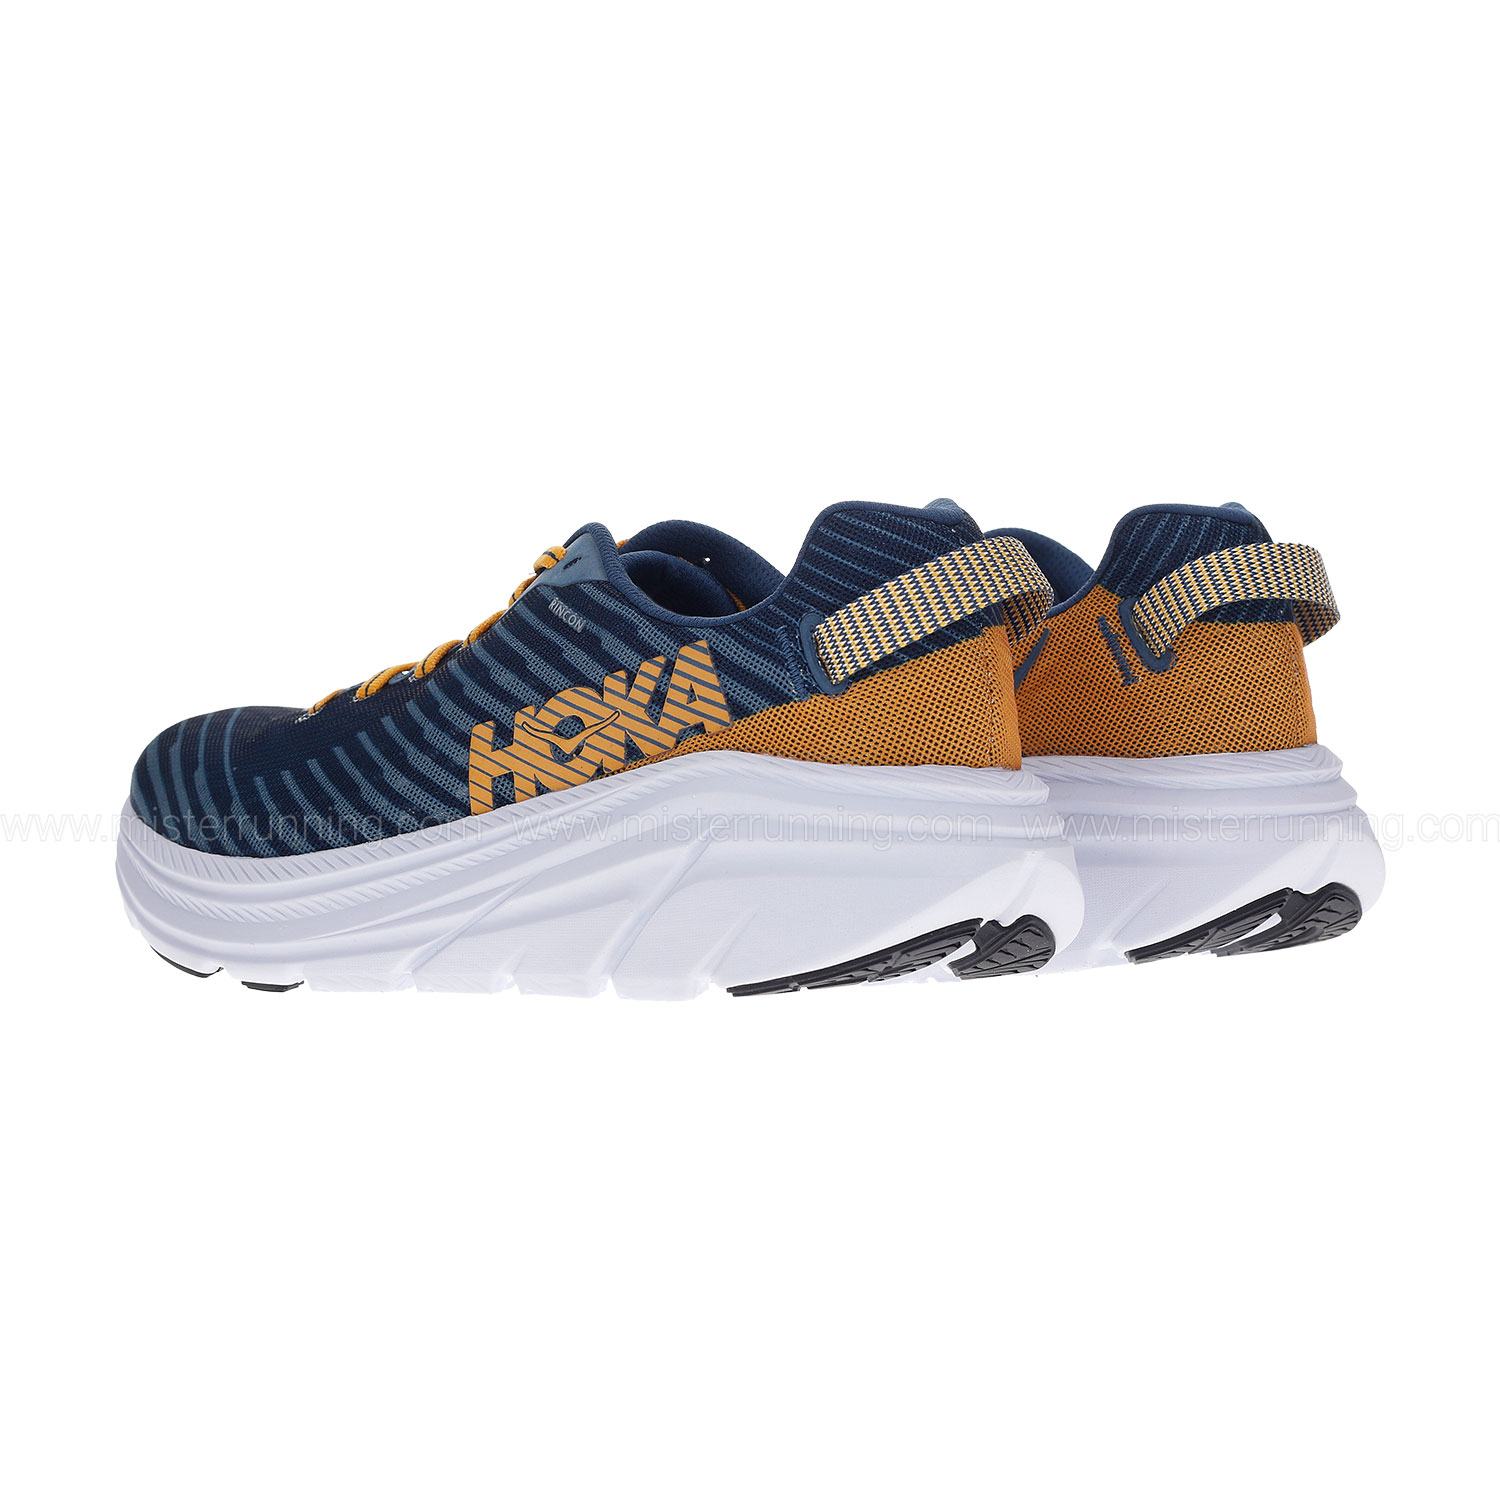 Hoka One One Rincon - Majolica Blue/Lead